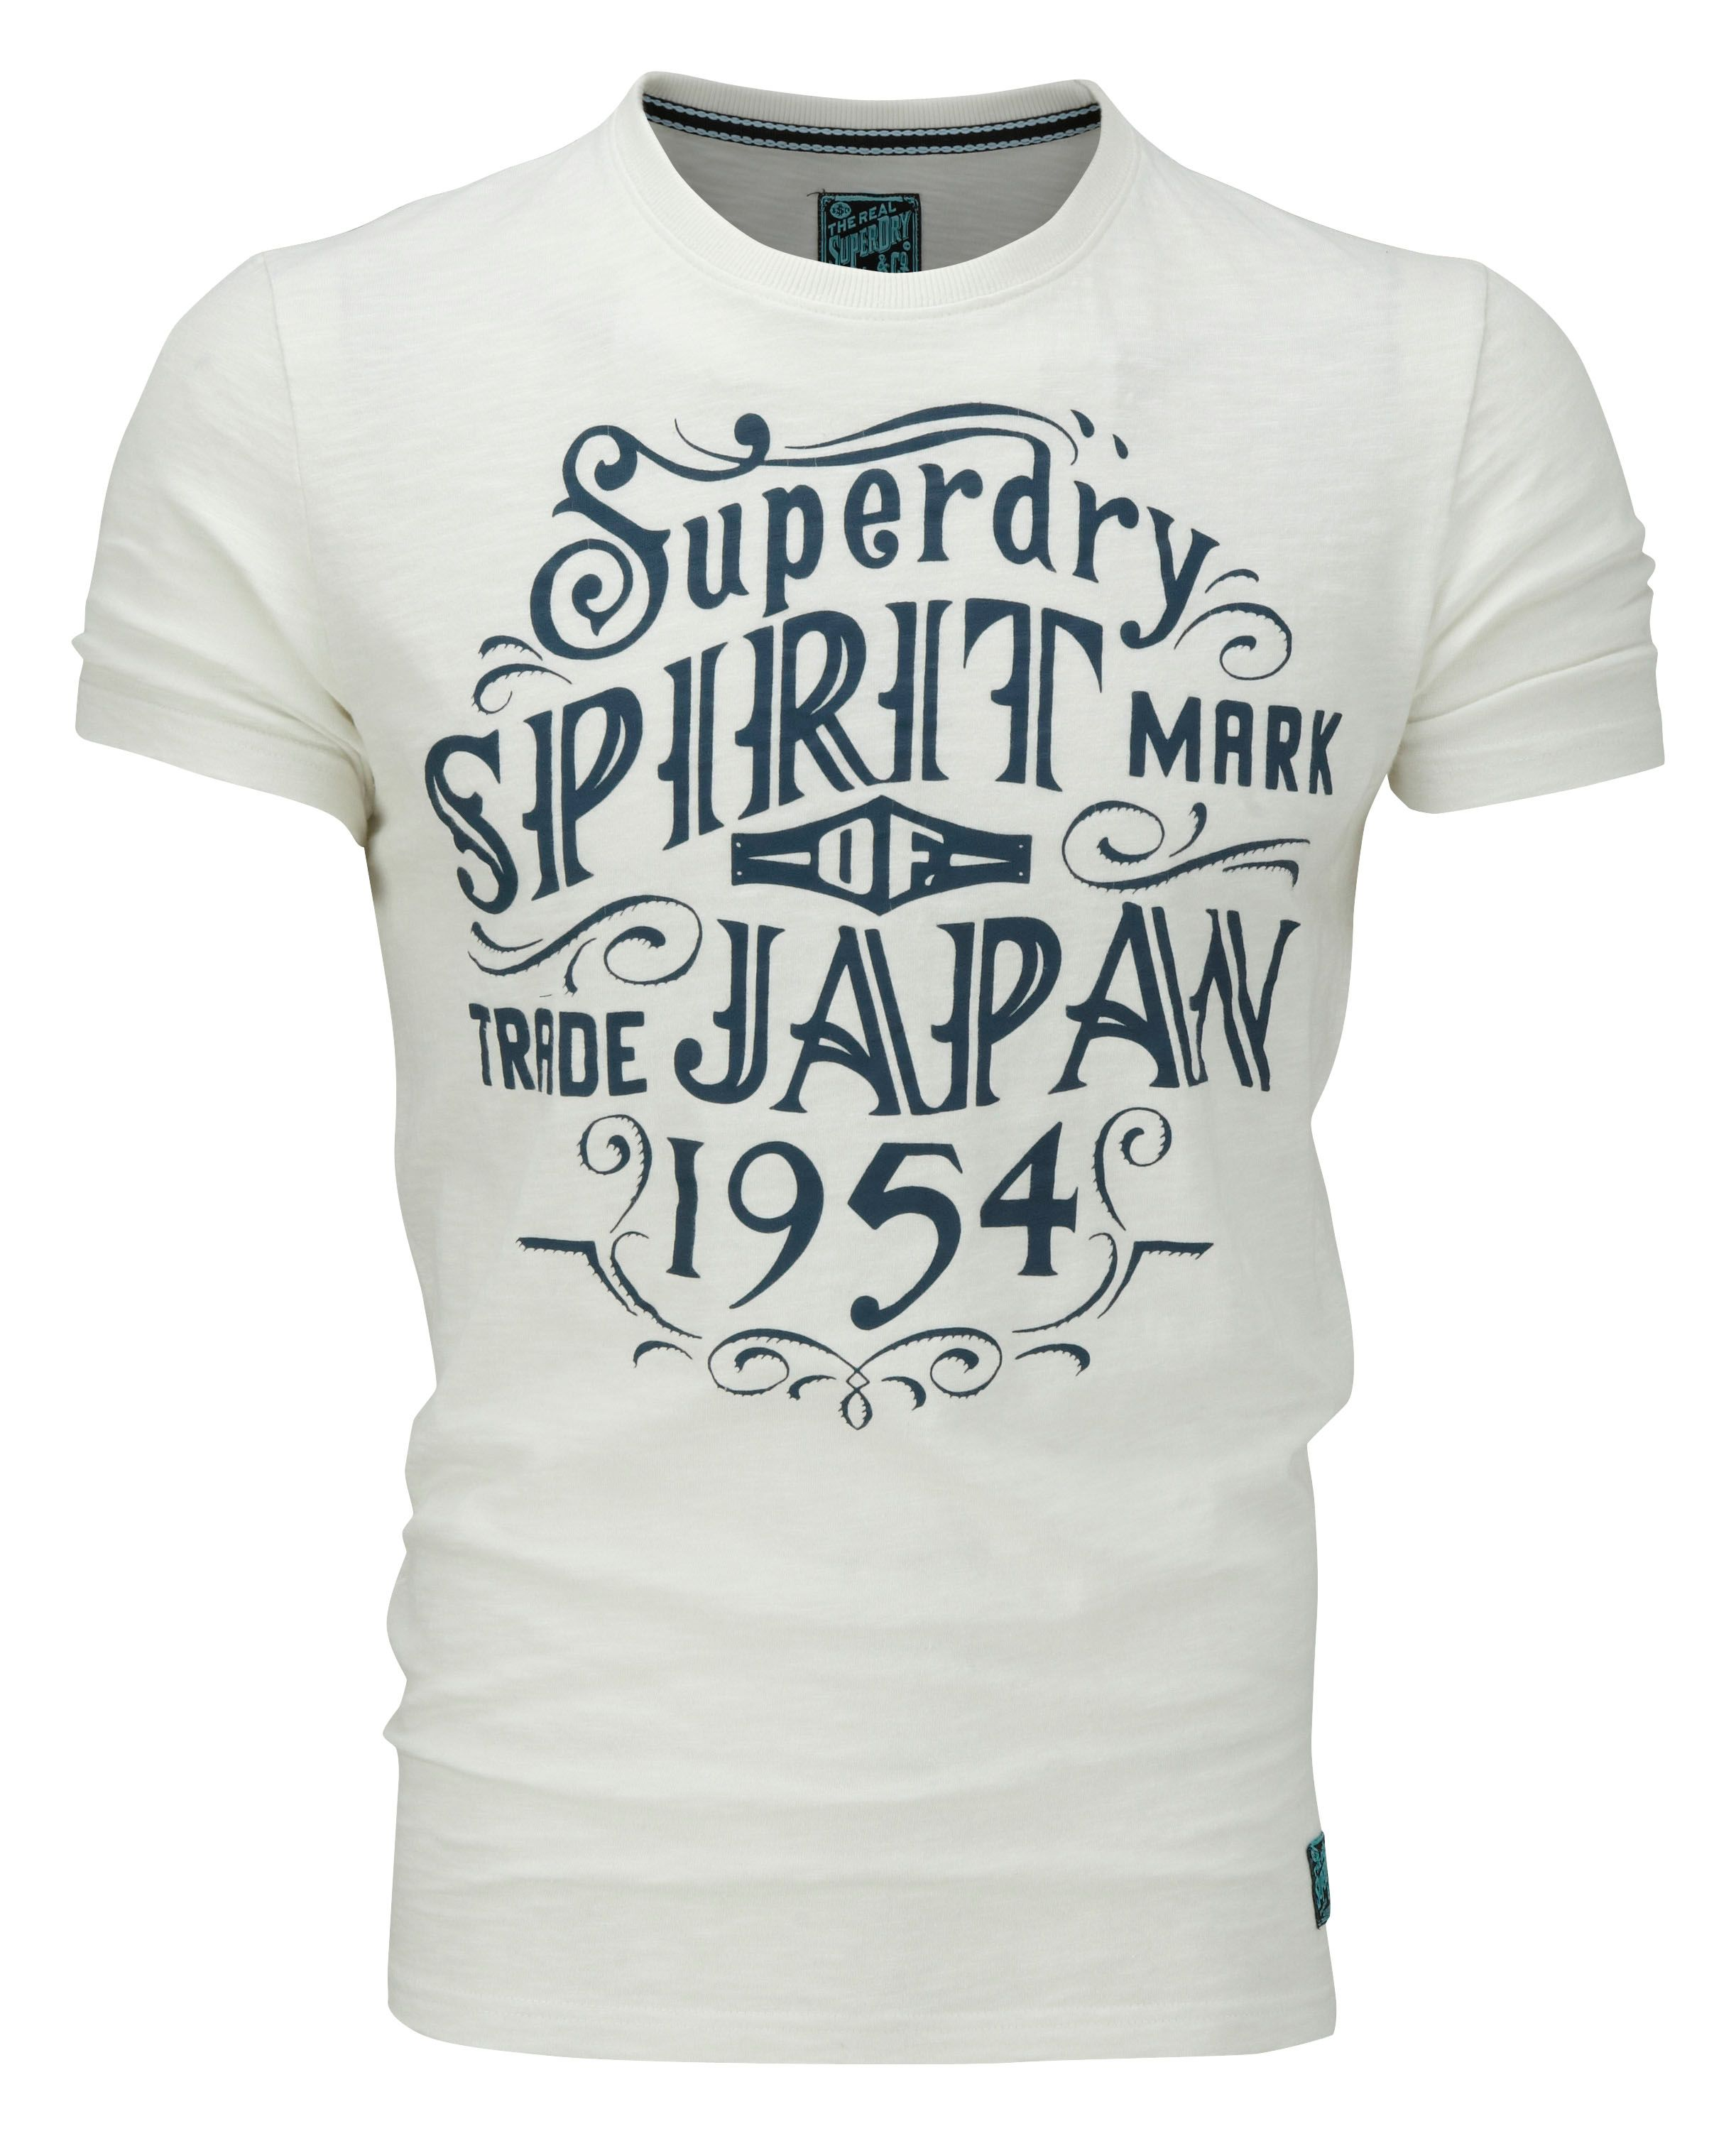 Spirit of japan t-shirt